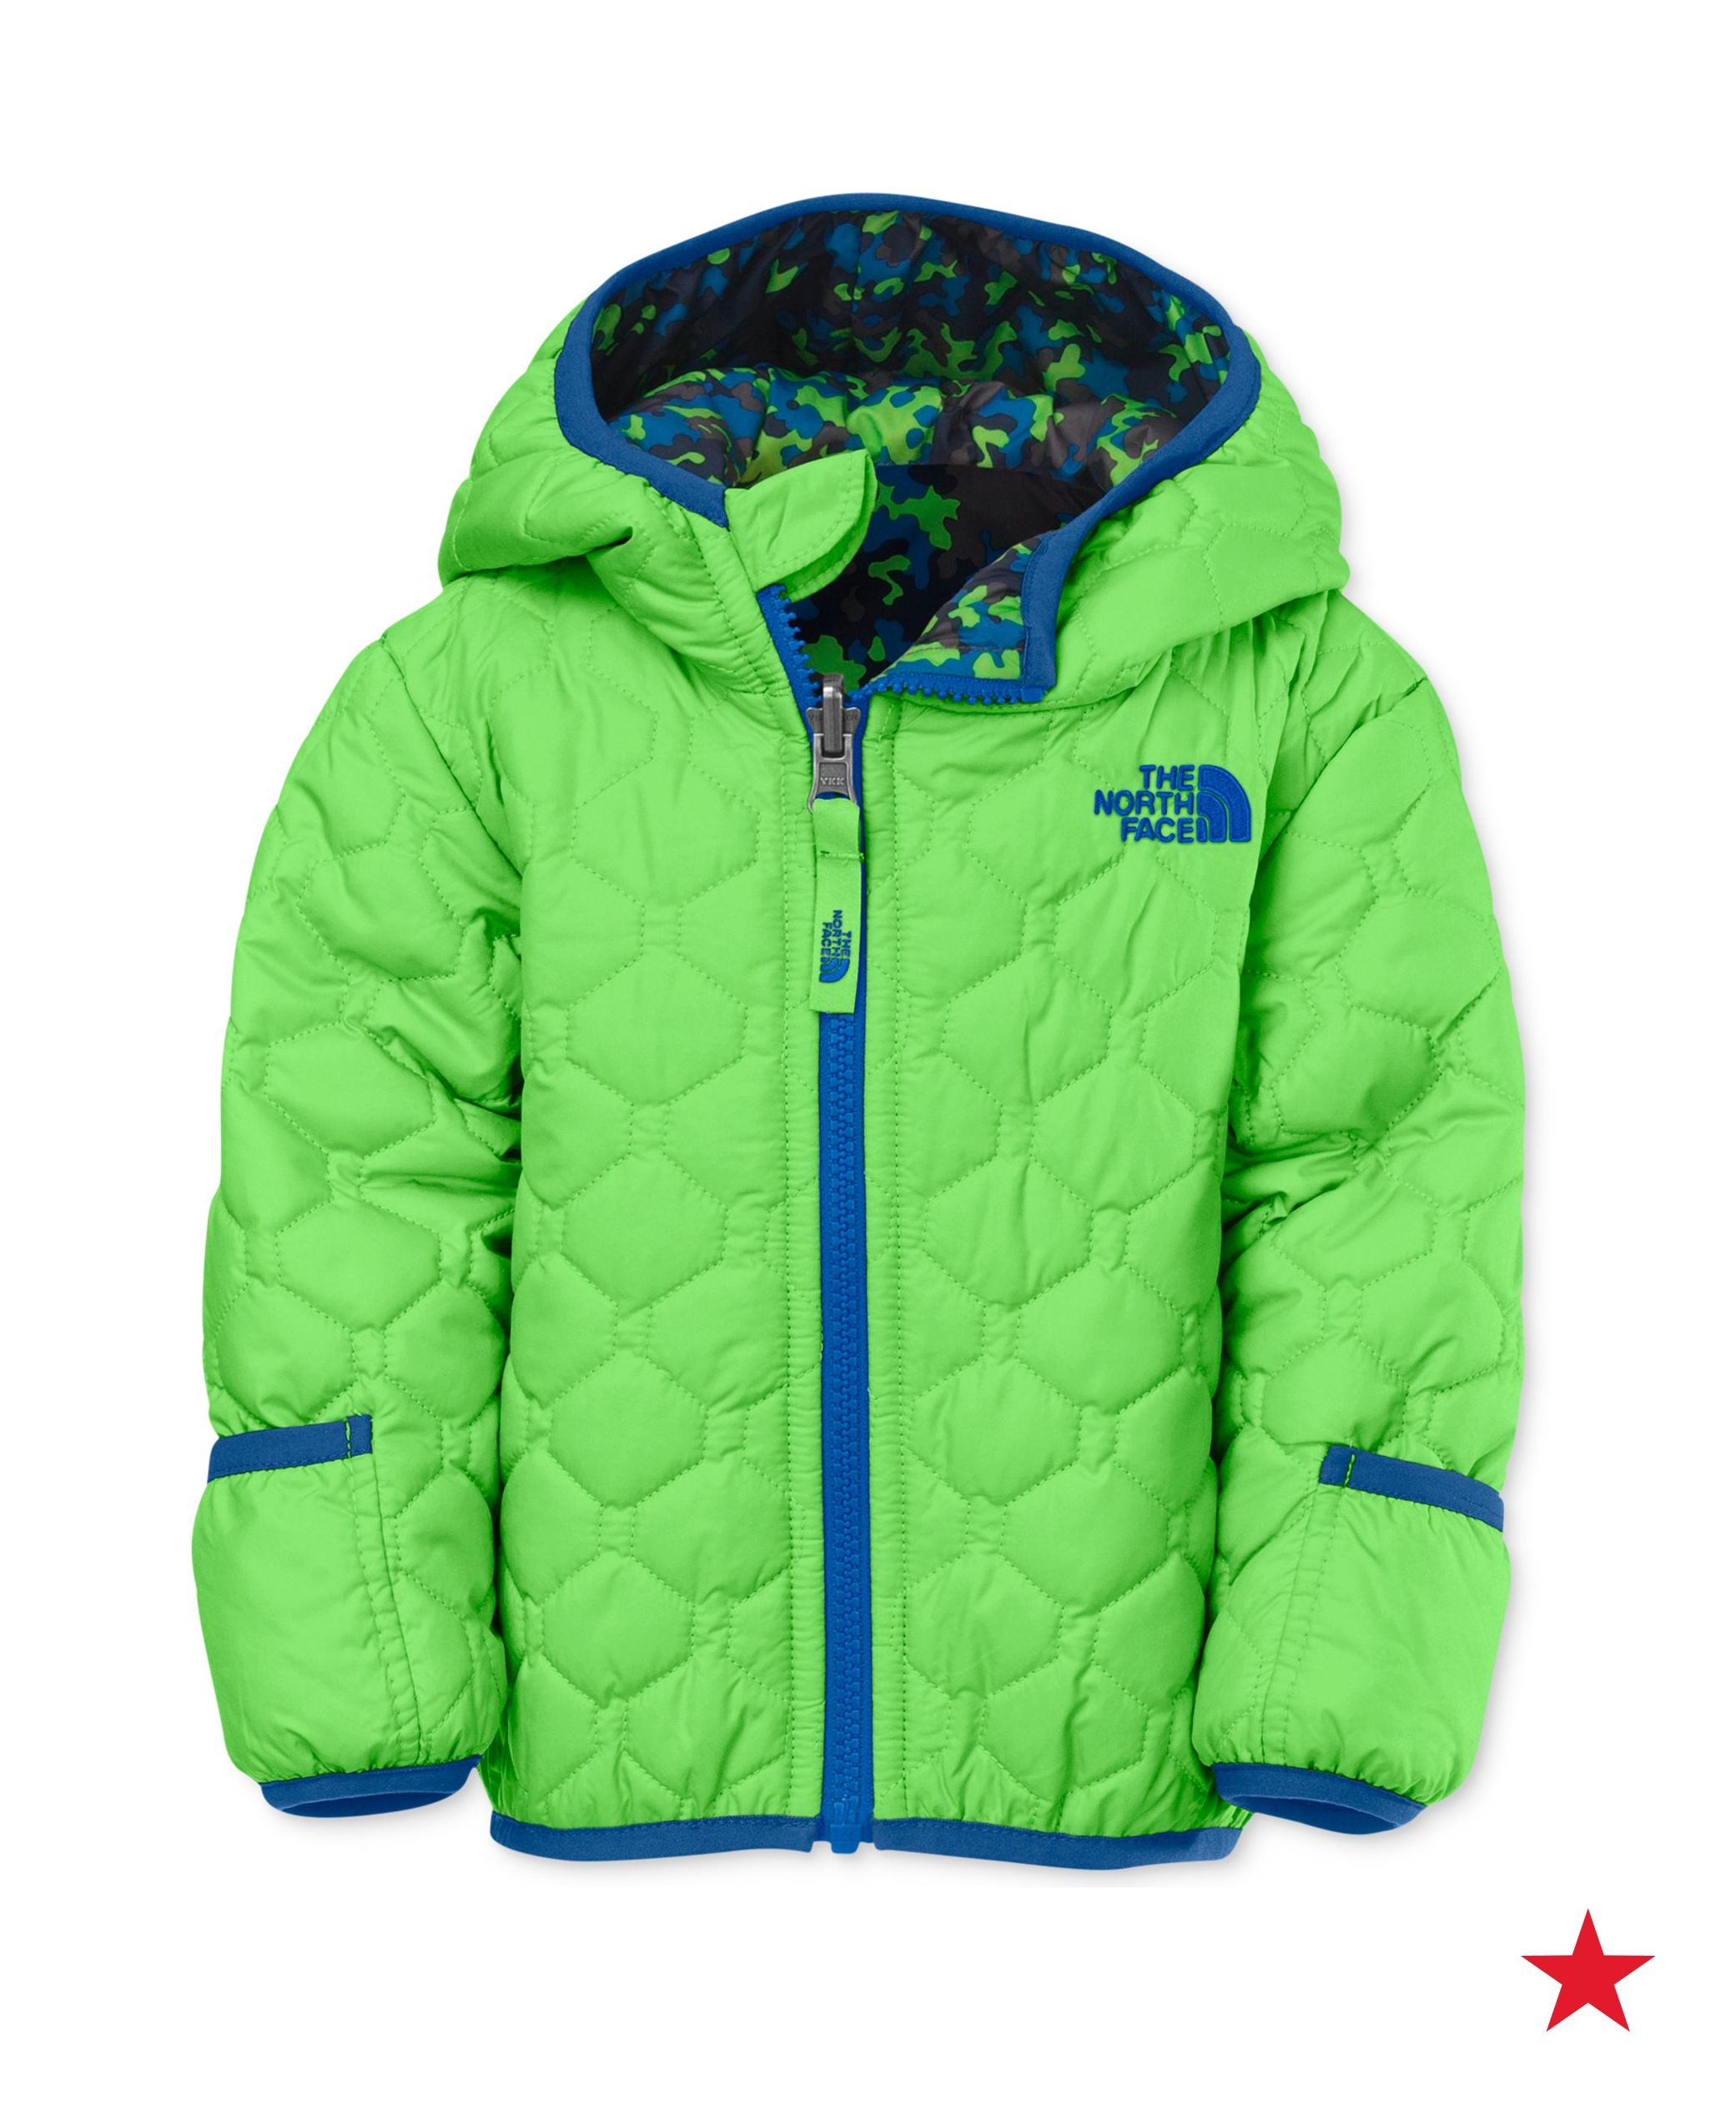 The North Face Baby Boys Perrito Reversible Jacket Kids Baby Macy S Jackets Reversible Jackets Kids Jacket [ 2542 x 2081 Pixel ]